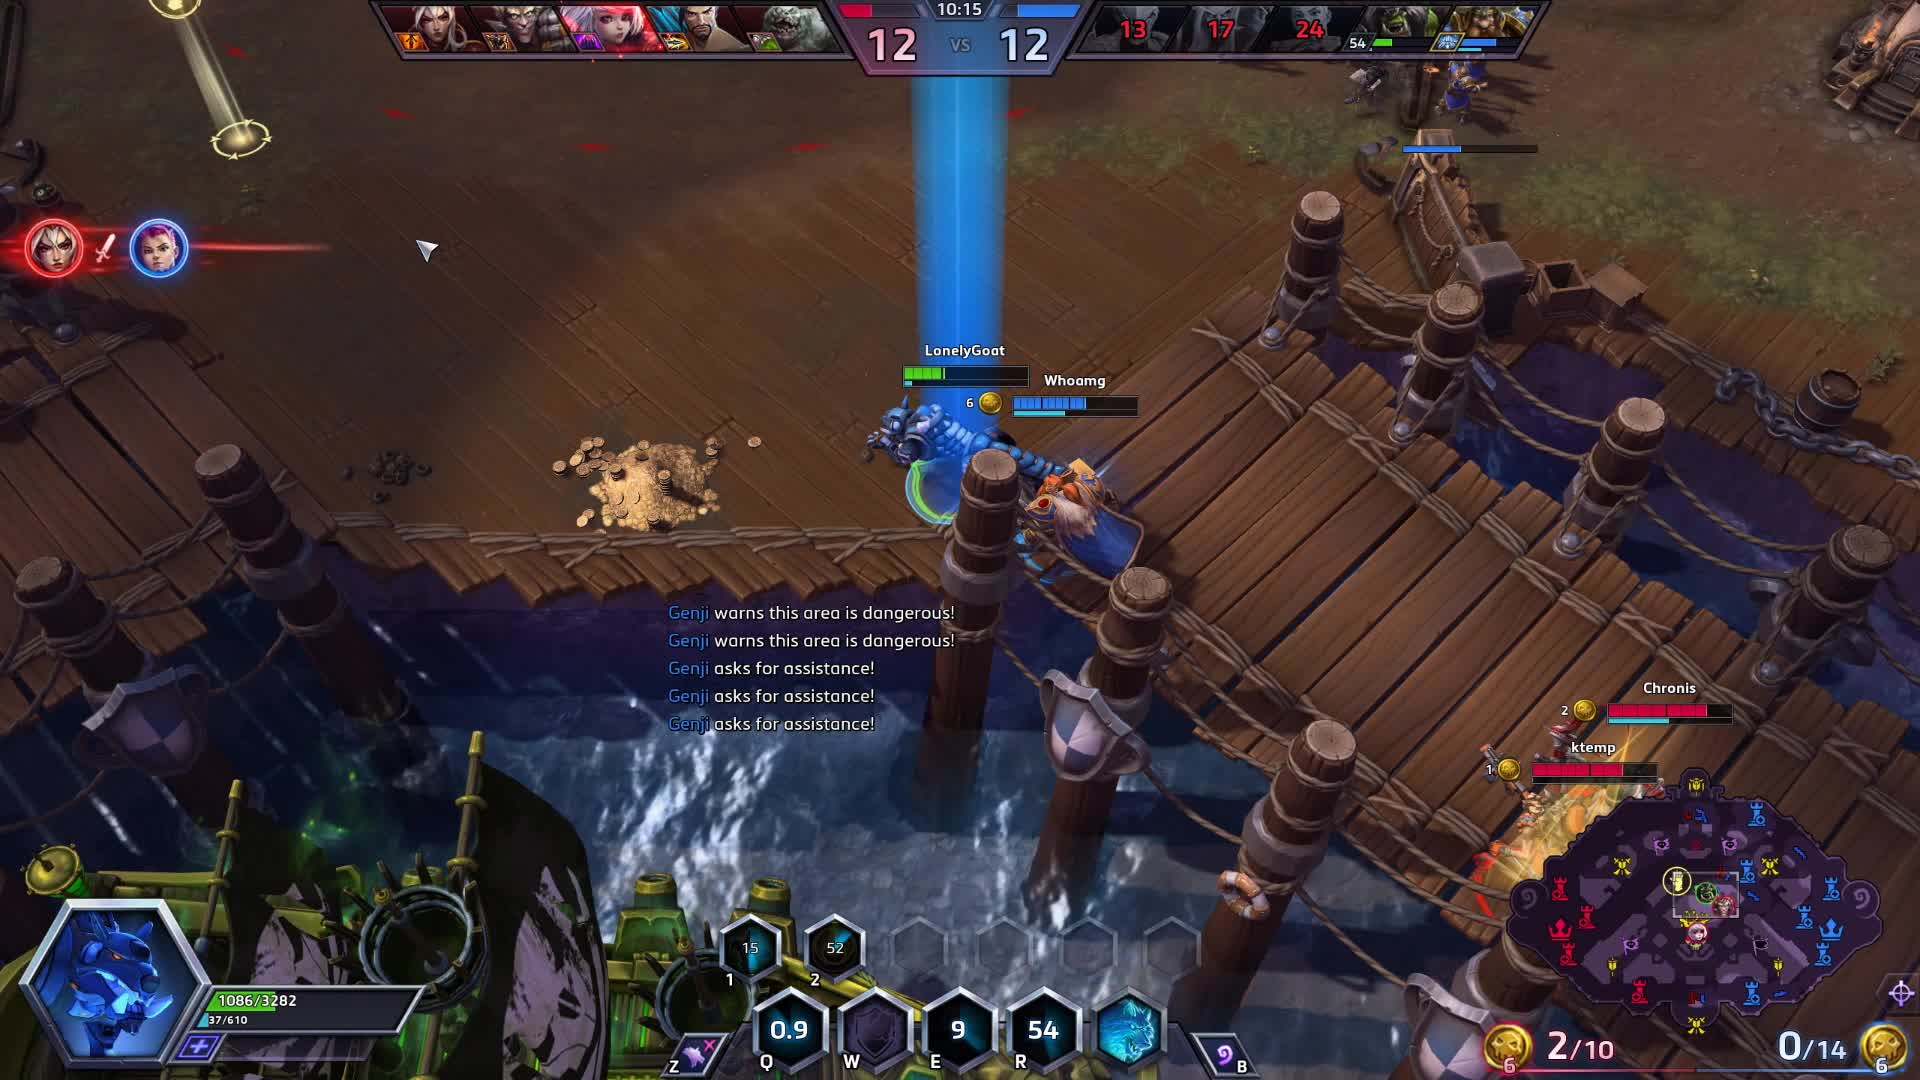 heroesofthestorm, vlc-record-2018-11-18-00h54m04s-Heroes of the Storm 2018.11.17 - 23.47.36.02.DVR.mp4- GIFs